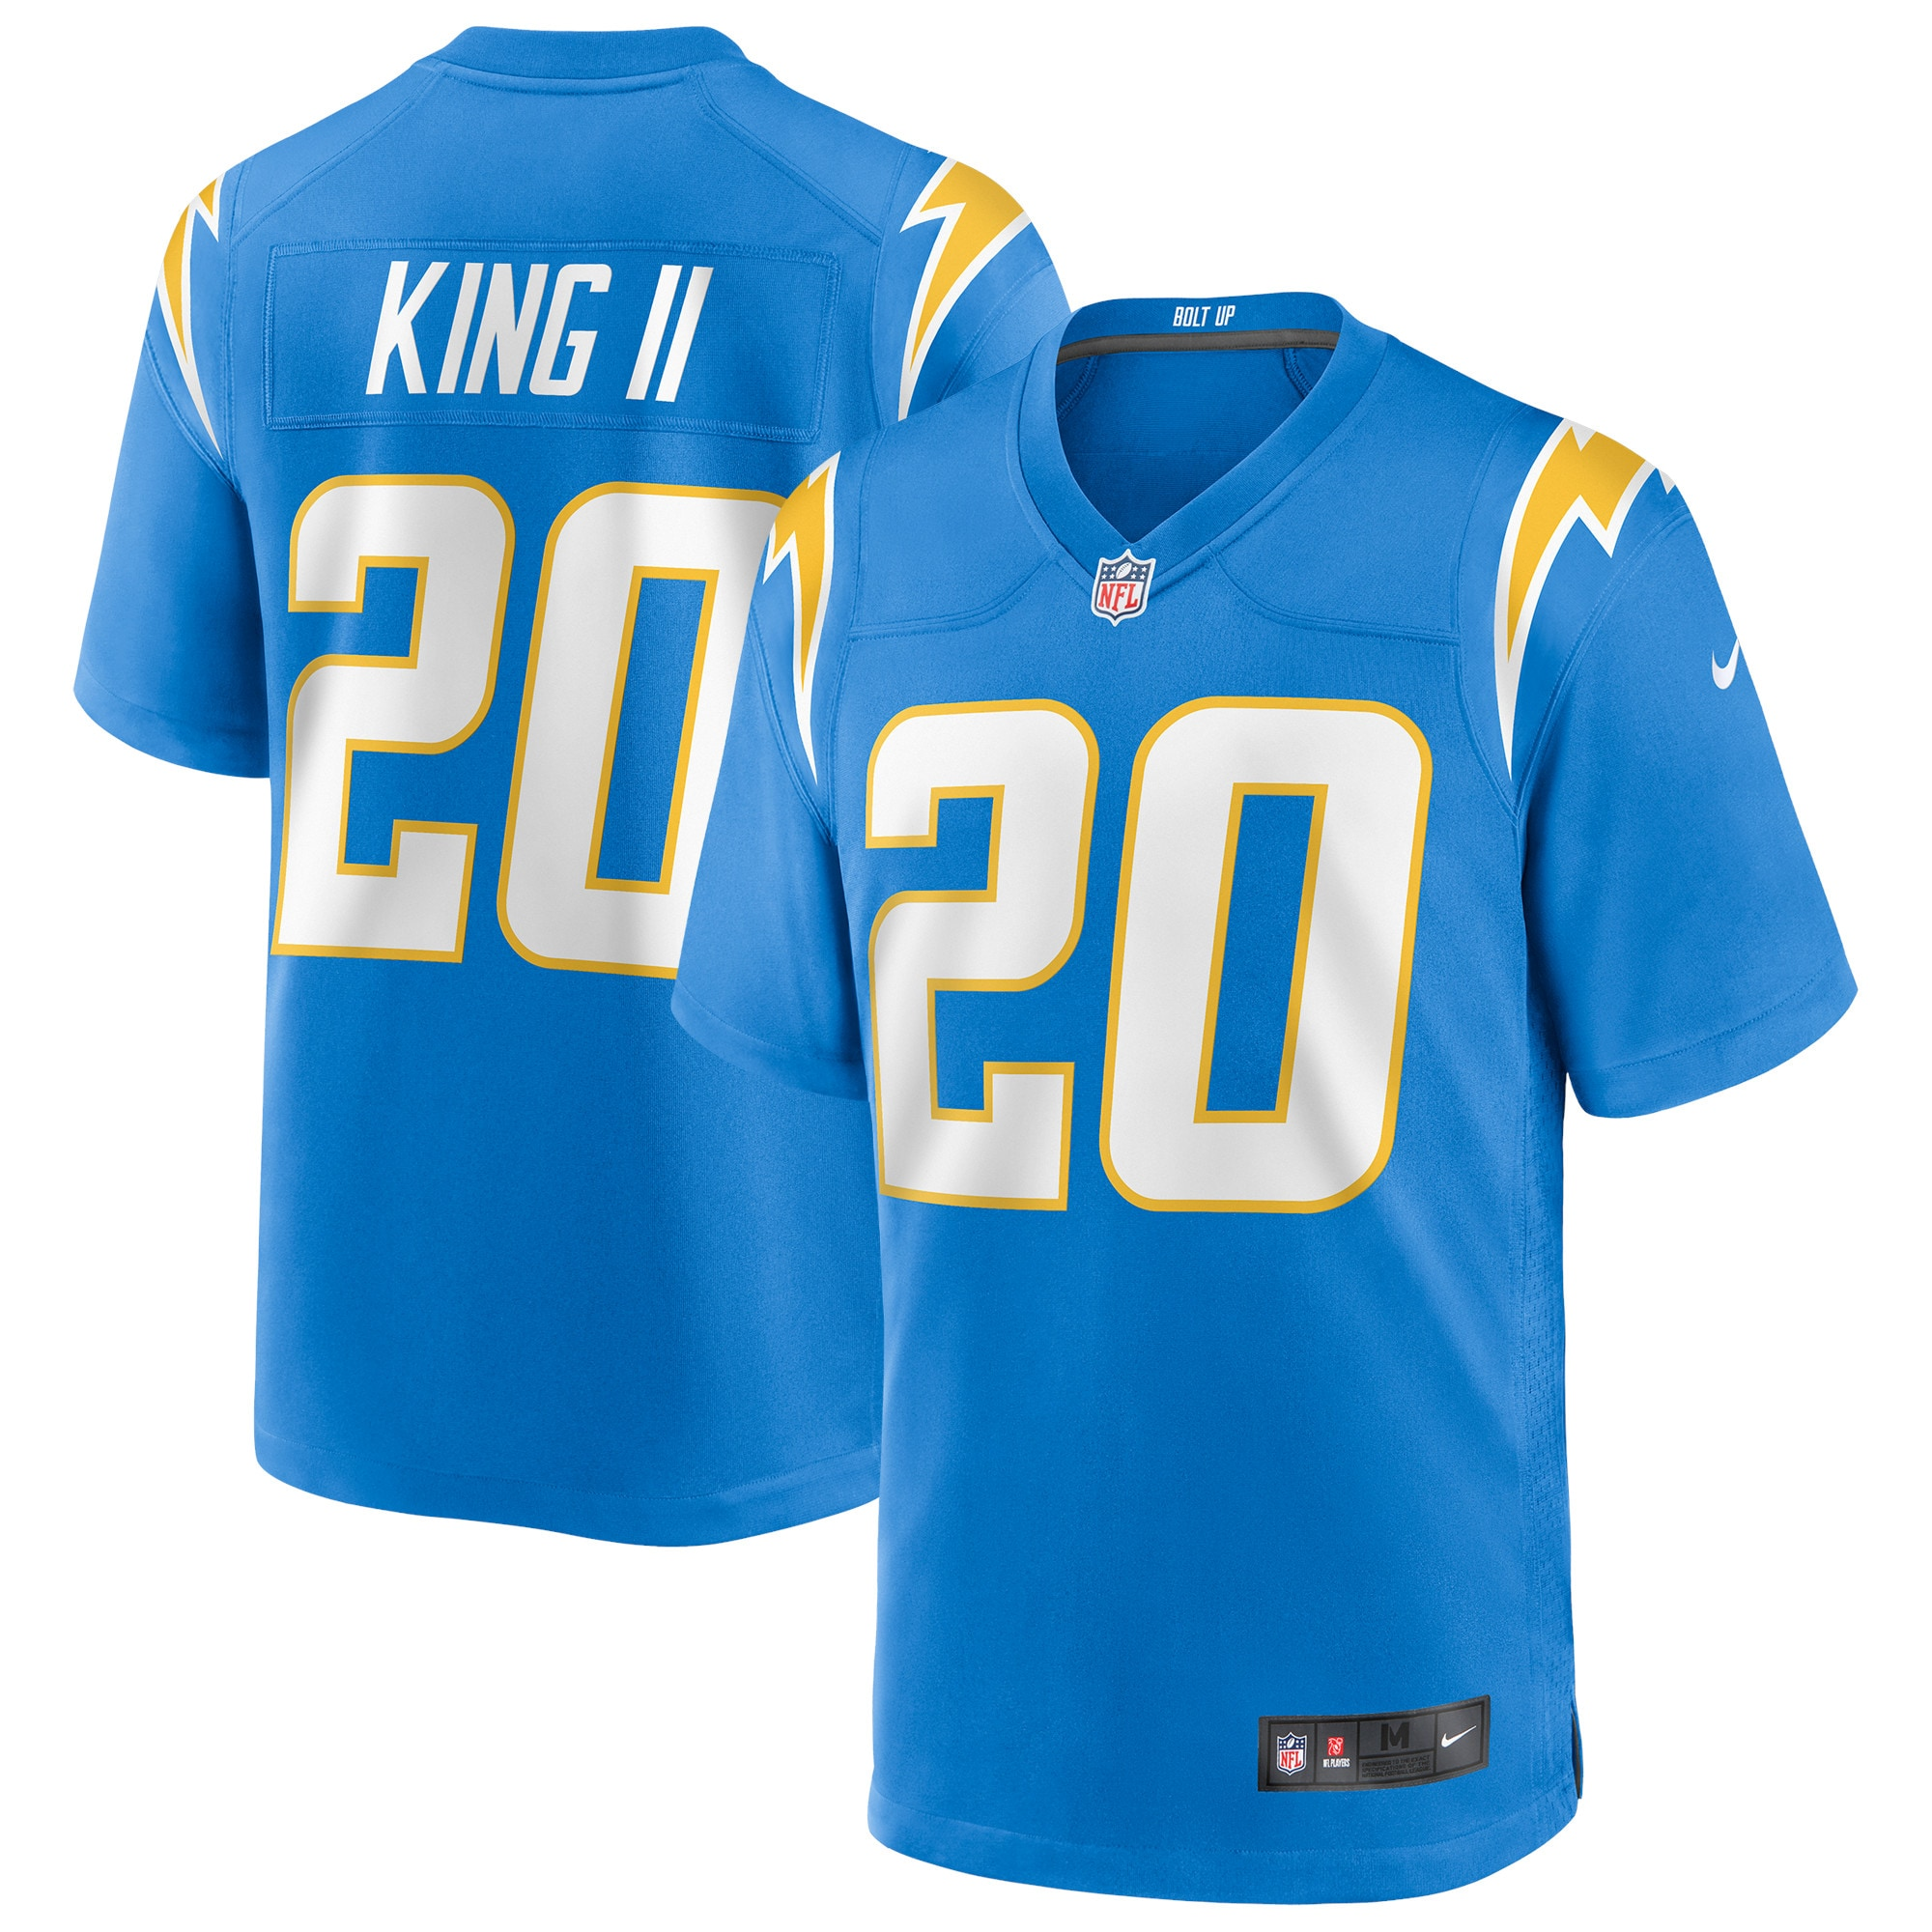 Desmond King Los Angeles Chargers Nike Game Jersey - Powder Blue